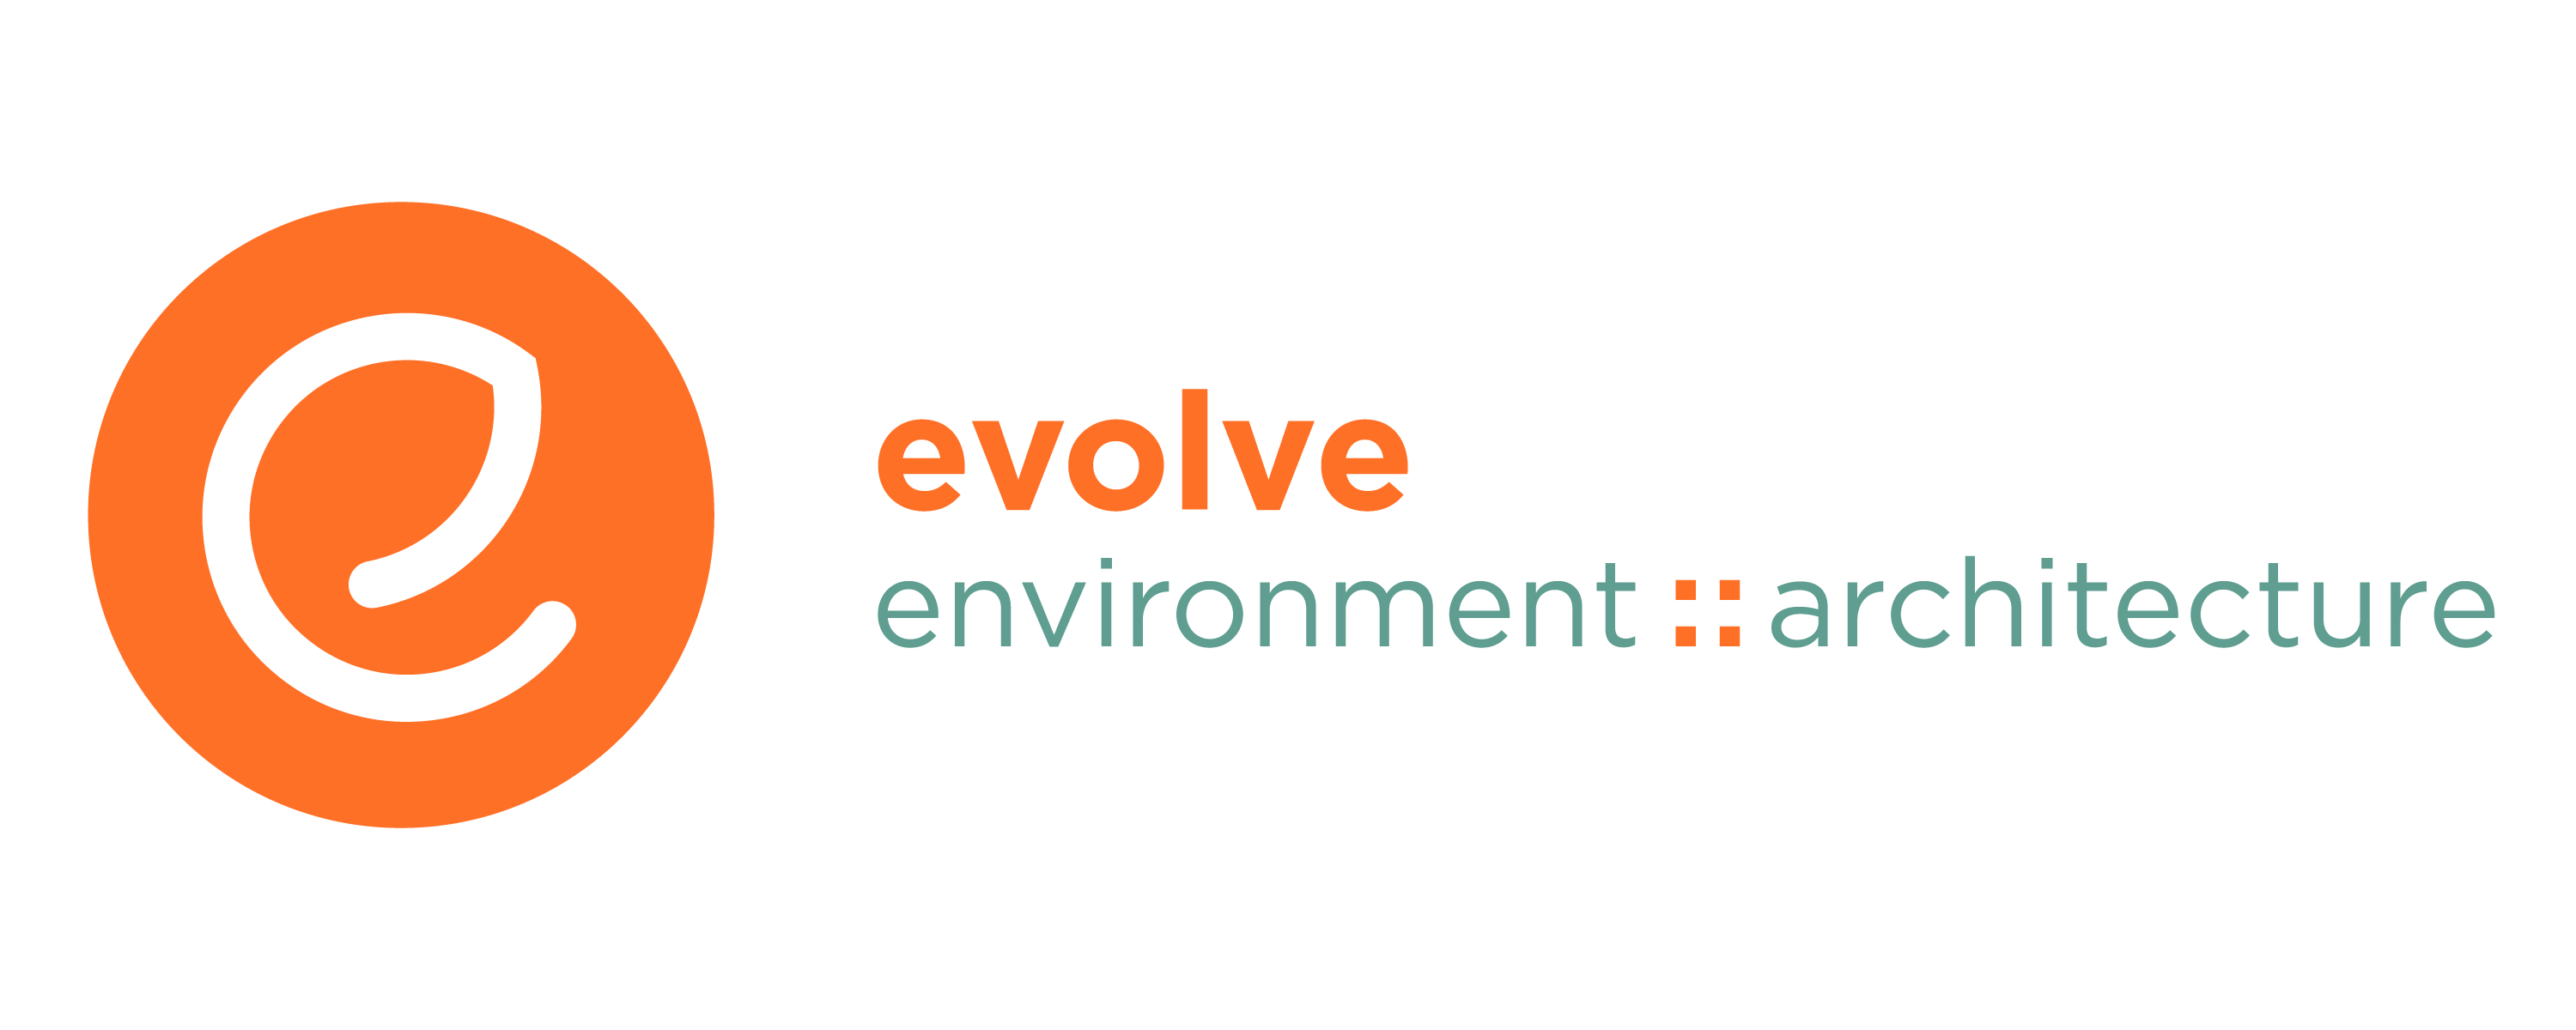 evolveEA Sustainable Architecture